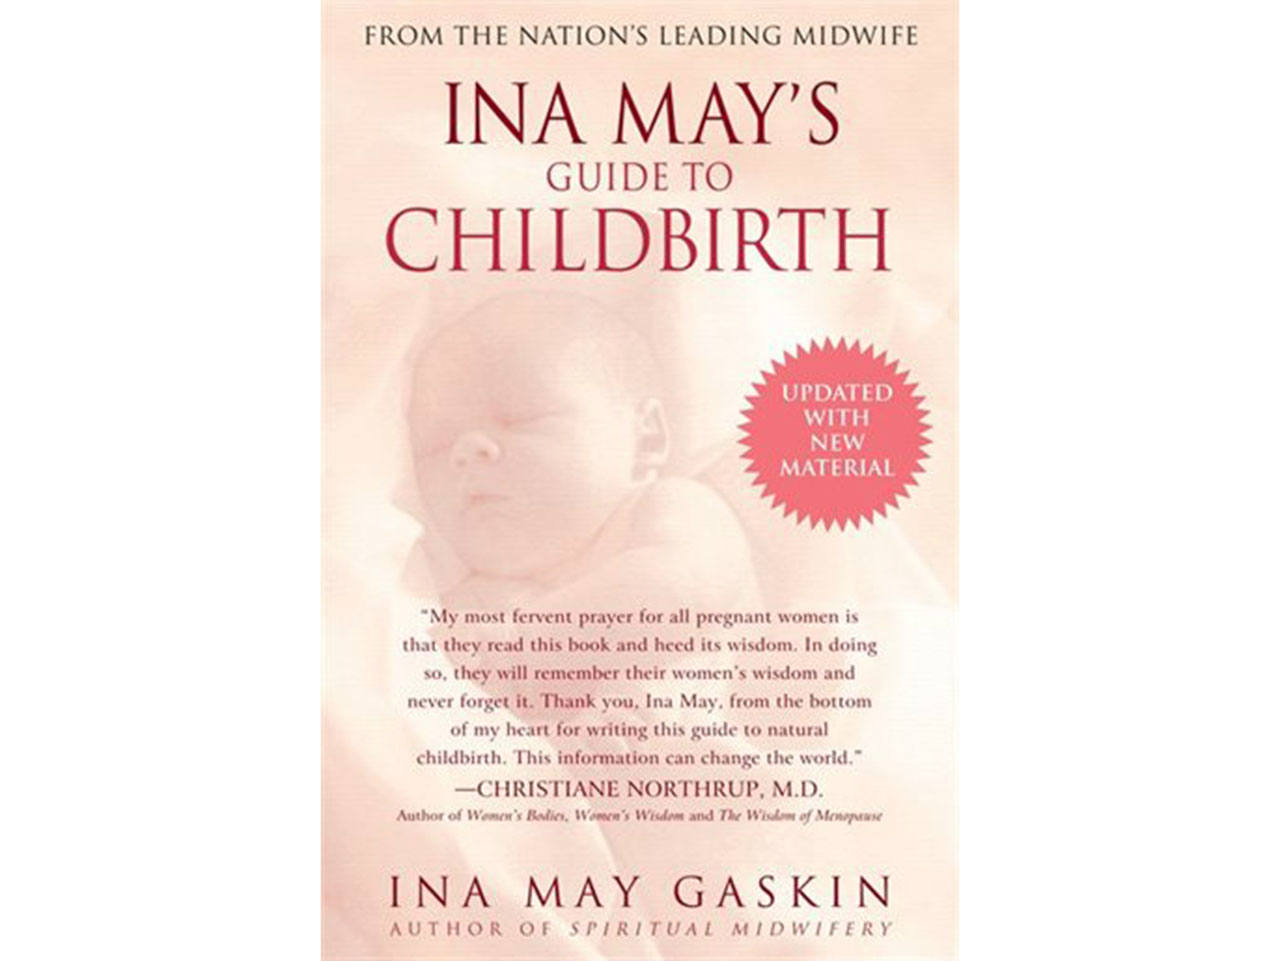 Glancing Pregnancy Book Ina Guide To Childbirth Pregnancy Books That Are Worth Buying Pregnancy Books Dads 2018 Cover Er Mors Pregnancy Books baby Best Pregnancy Books